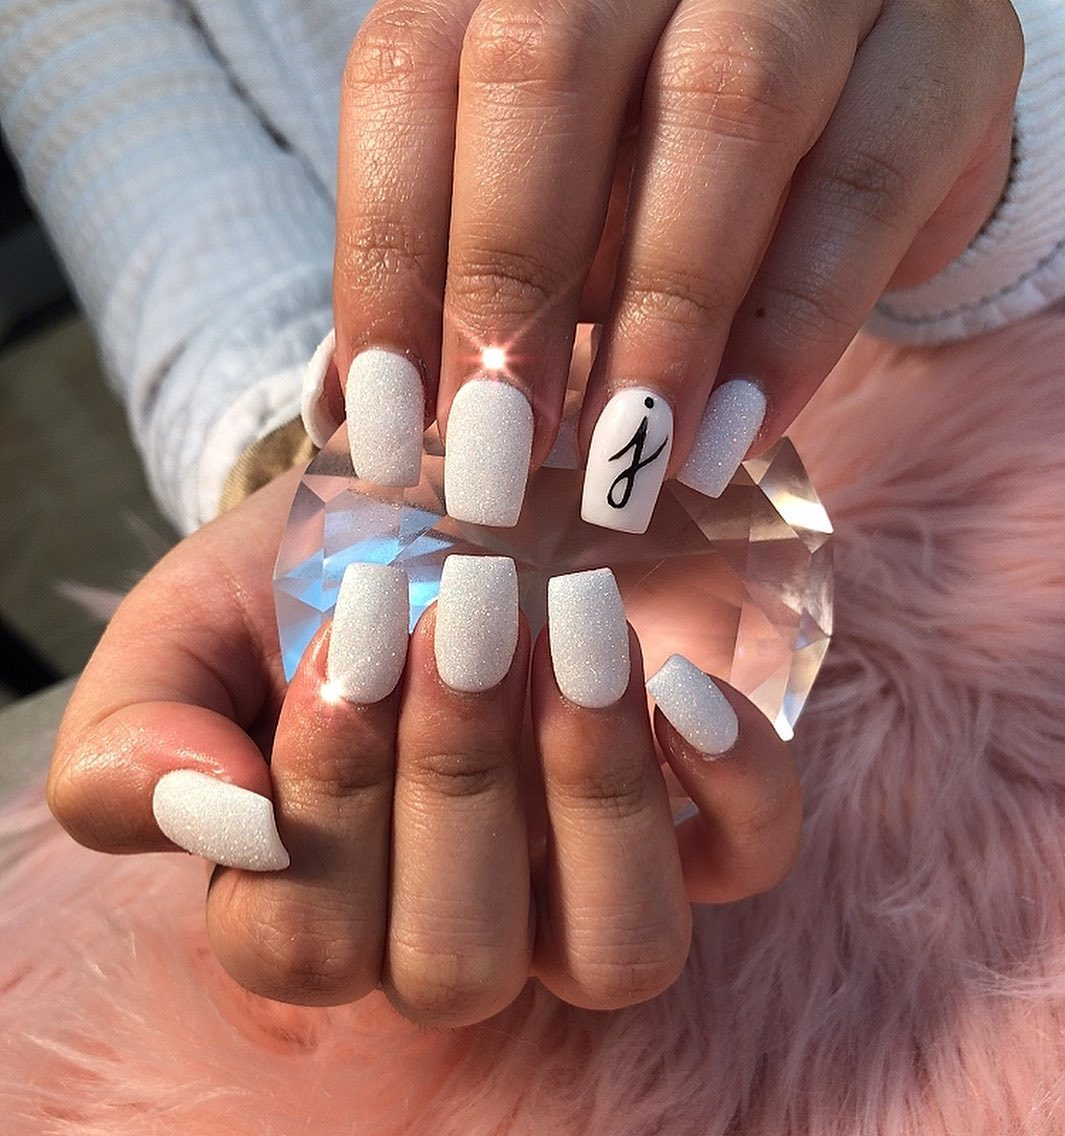 40+ of the Sweetest Sugar Nails